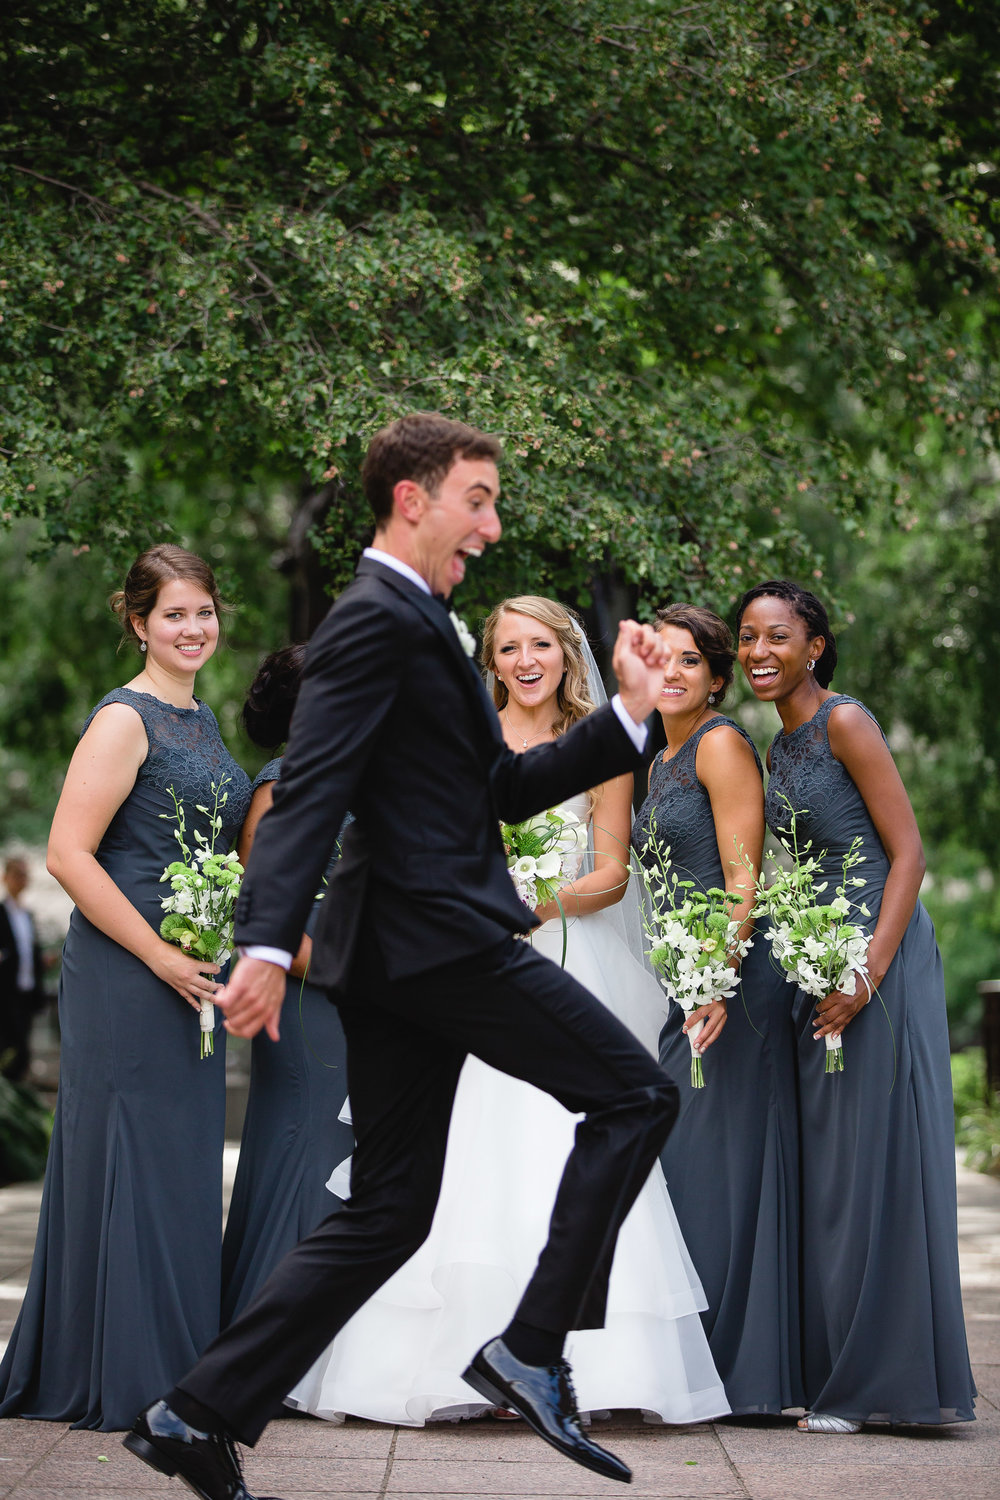 Robb McCormick Photography - Wedding Photographer (16 of 128).jpg